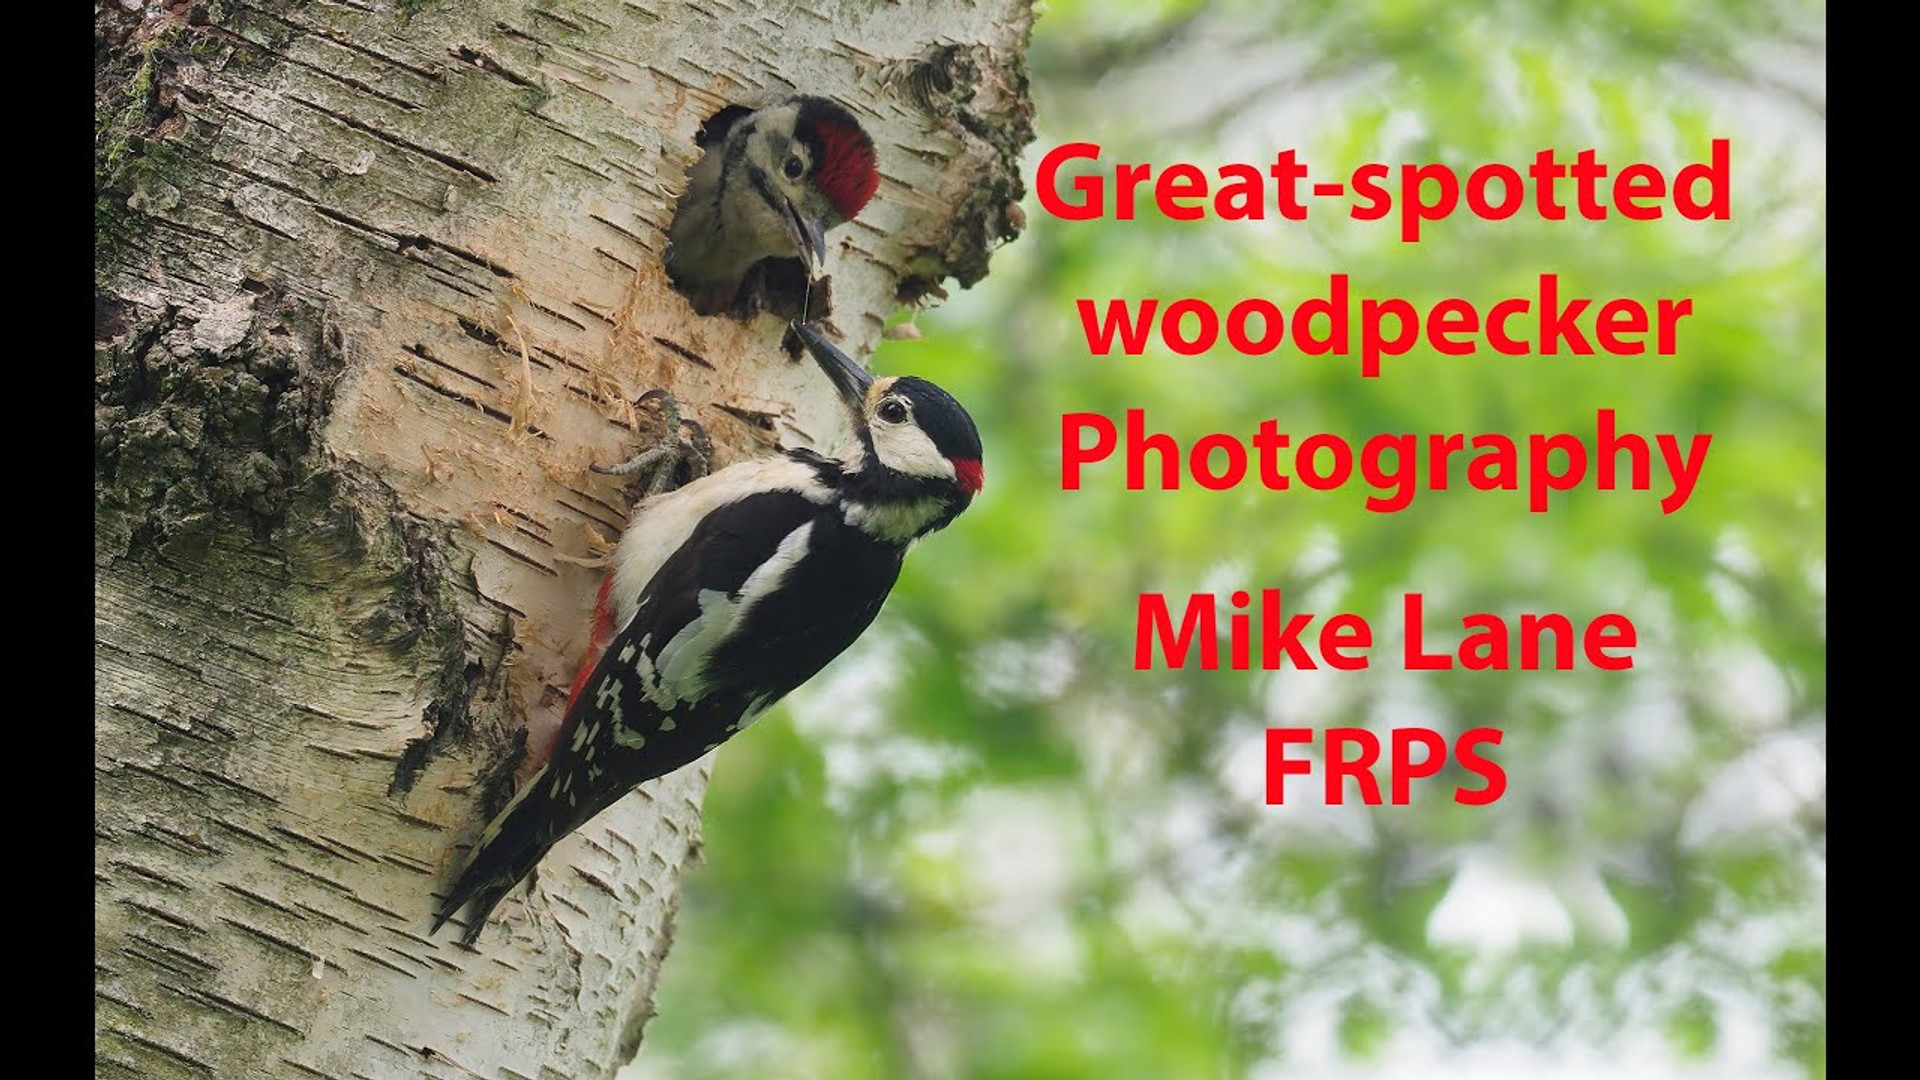 Photographing Great-spotted Woodpeckers